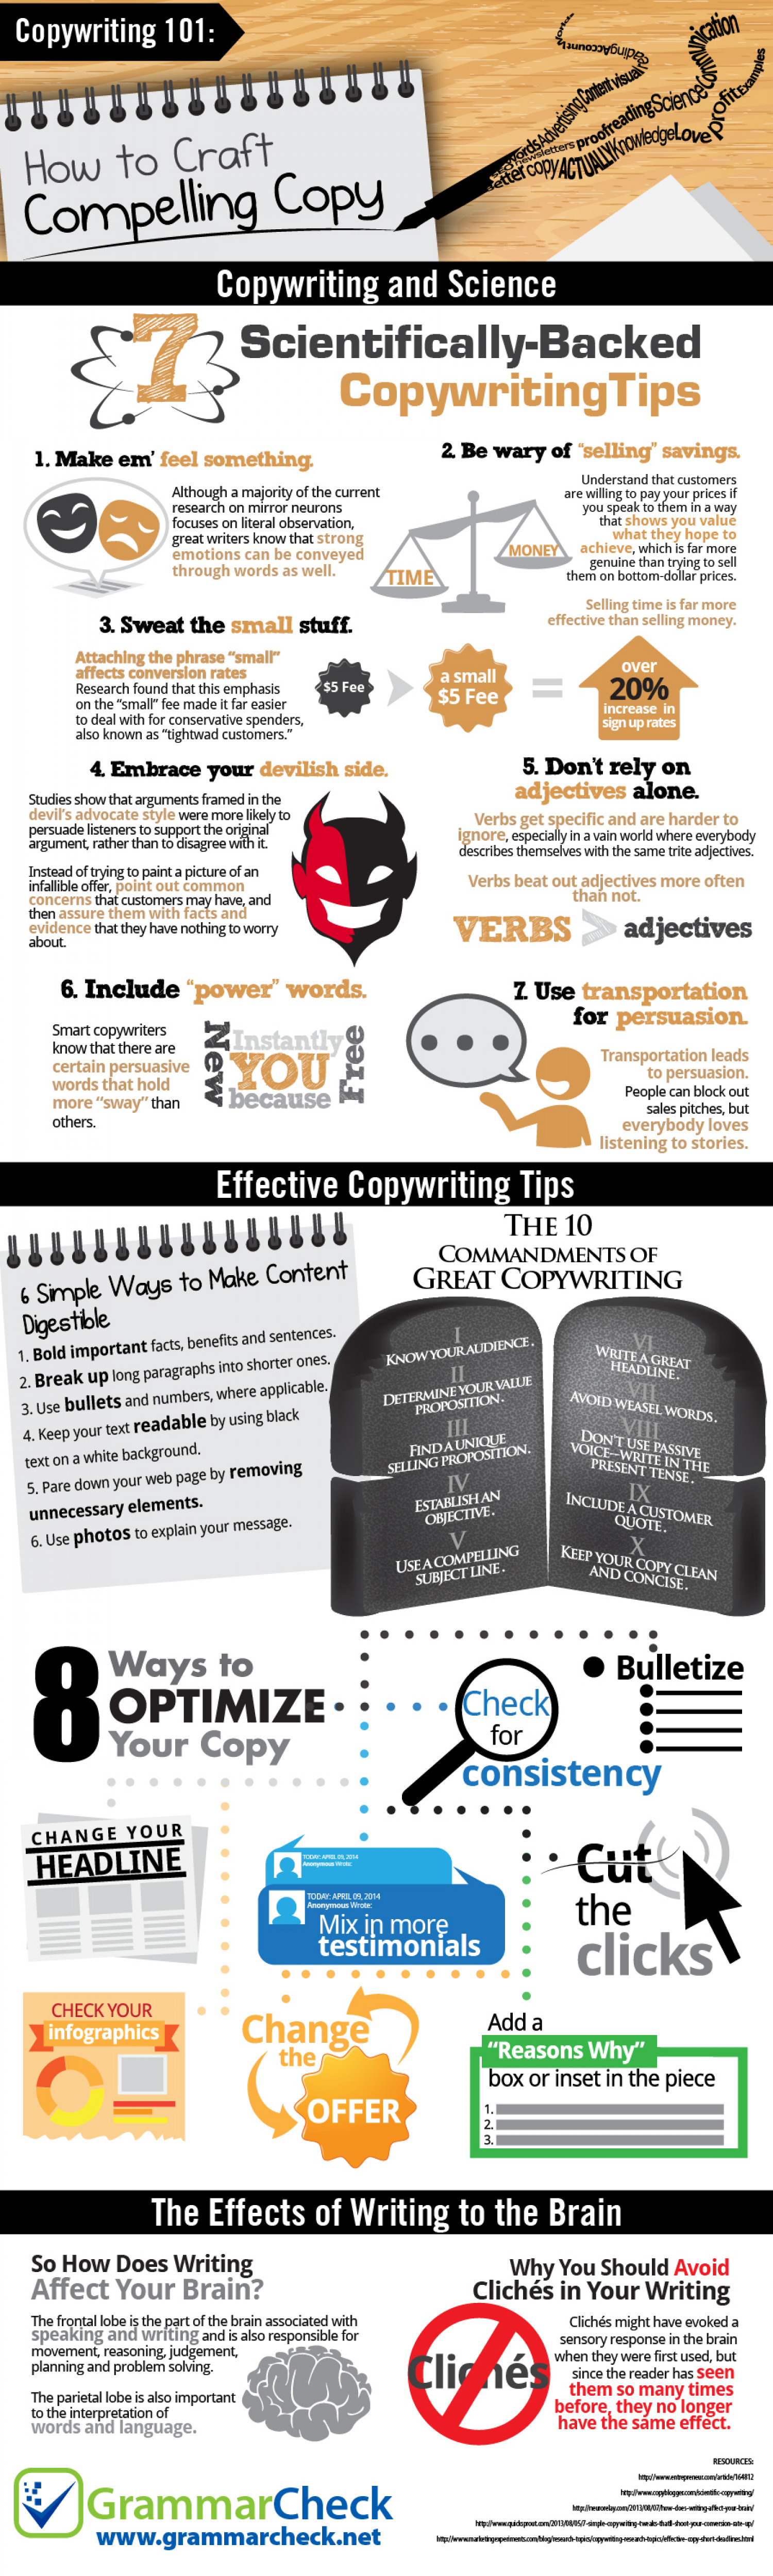 Copywriting 101: How to Craft Compelling Copy Infographic